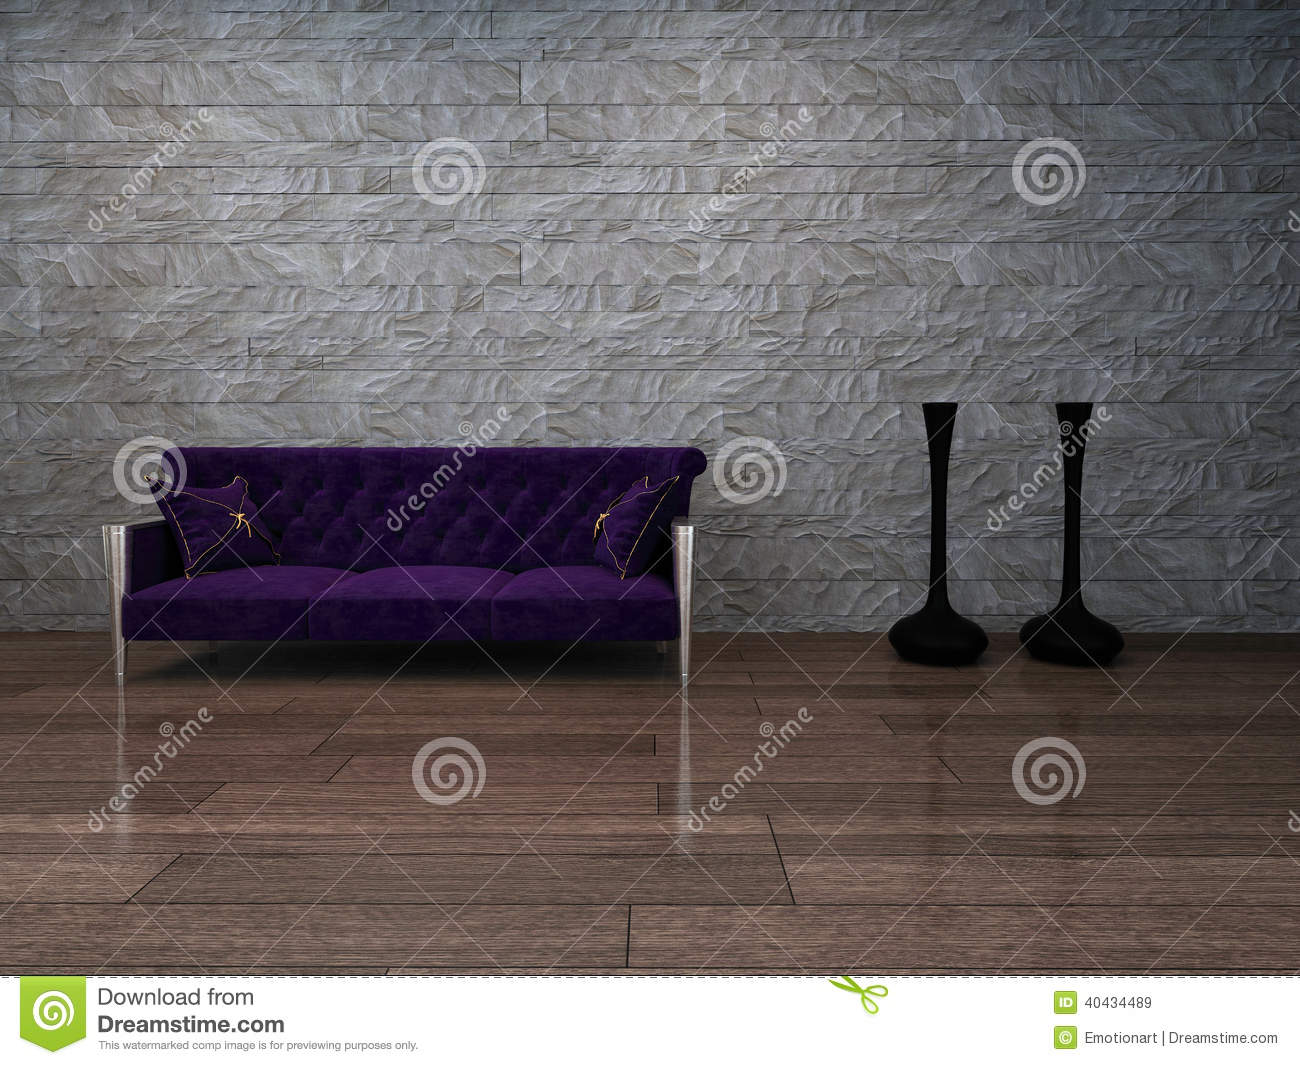 la violette baroque de style peut faire pipi contre le mur en pierre illustration stock image. Black Bedroom Furniture Sets. Home Design Ideas